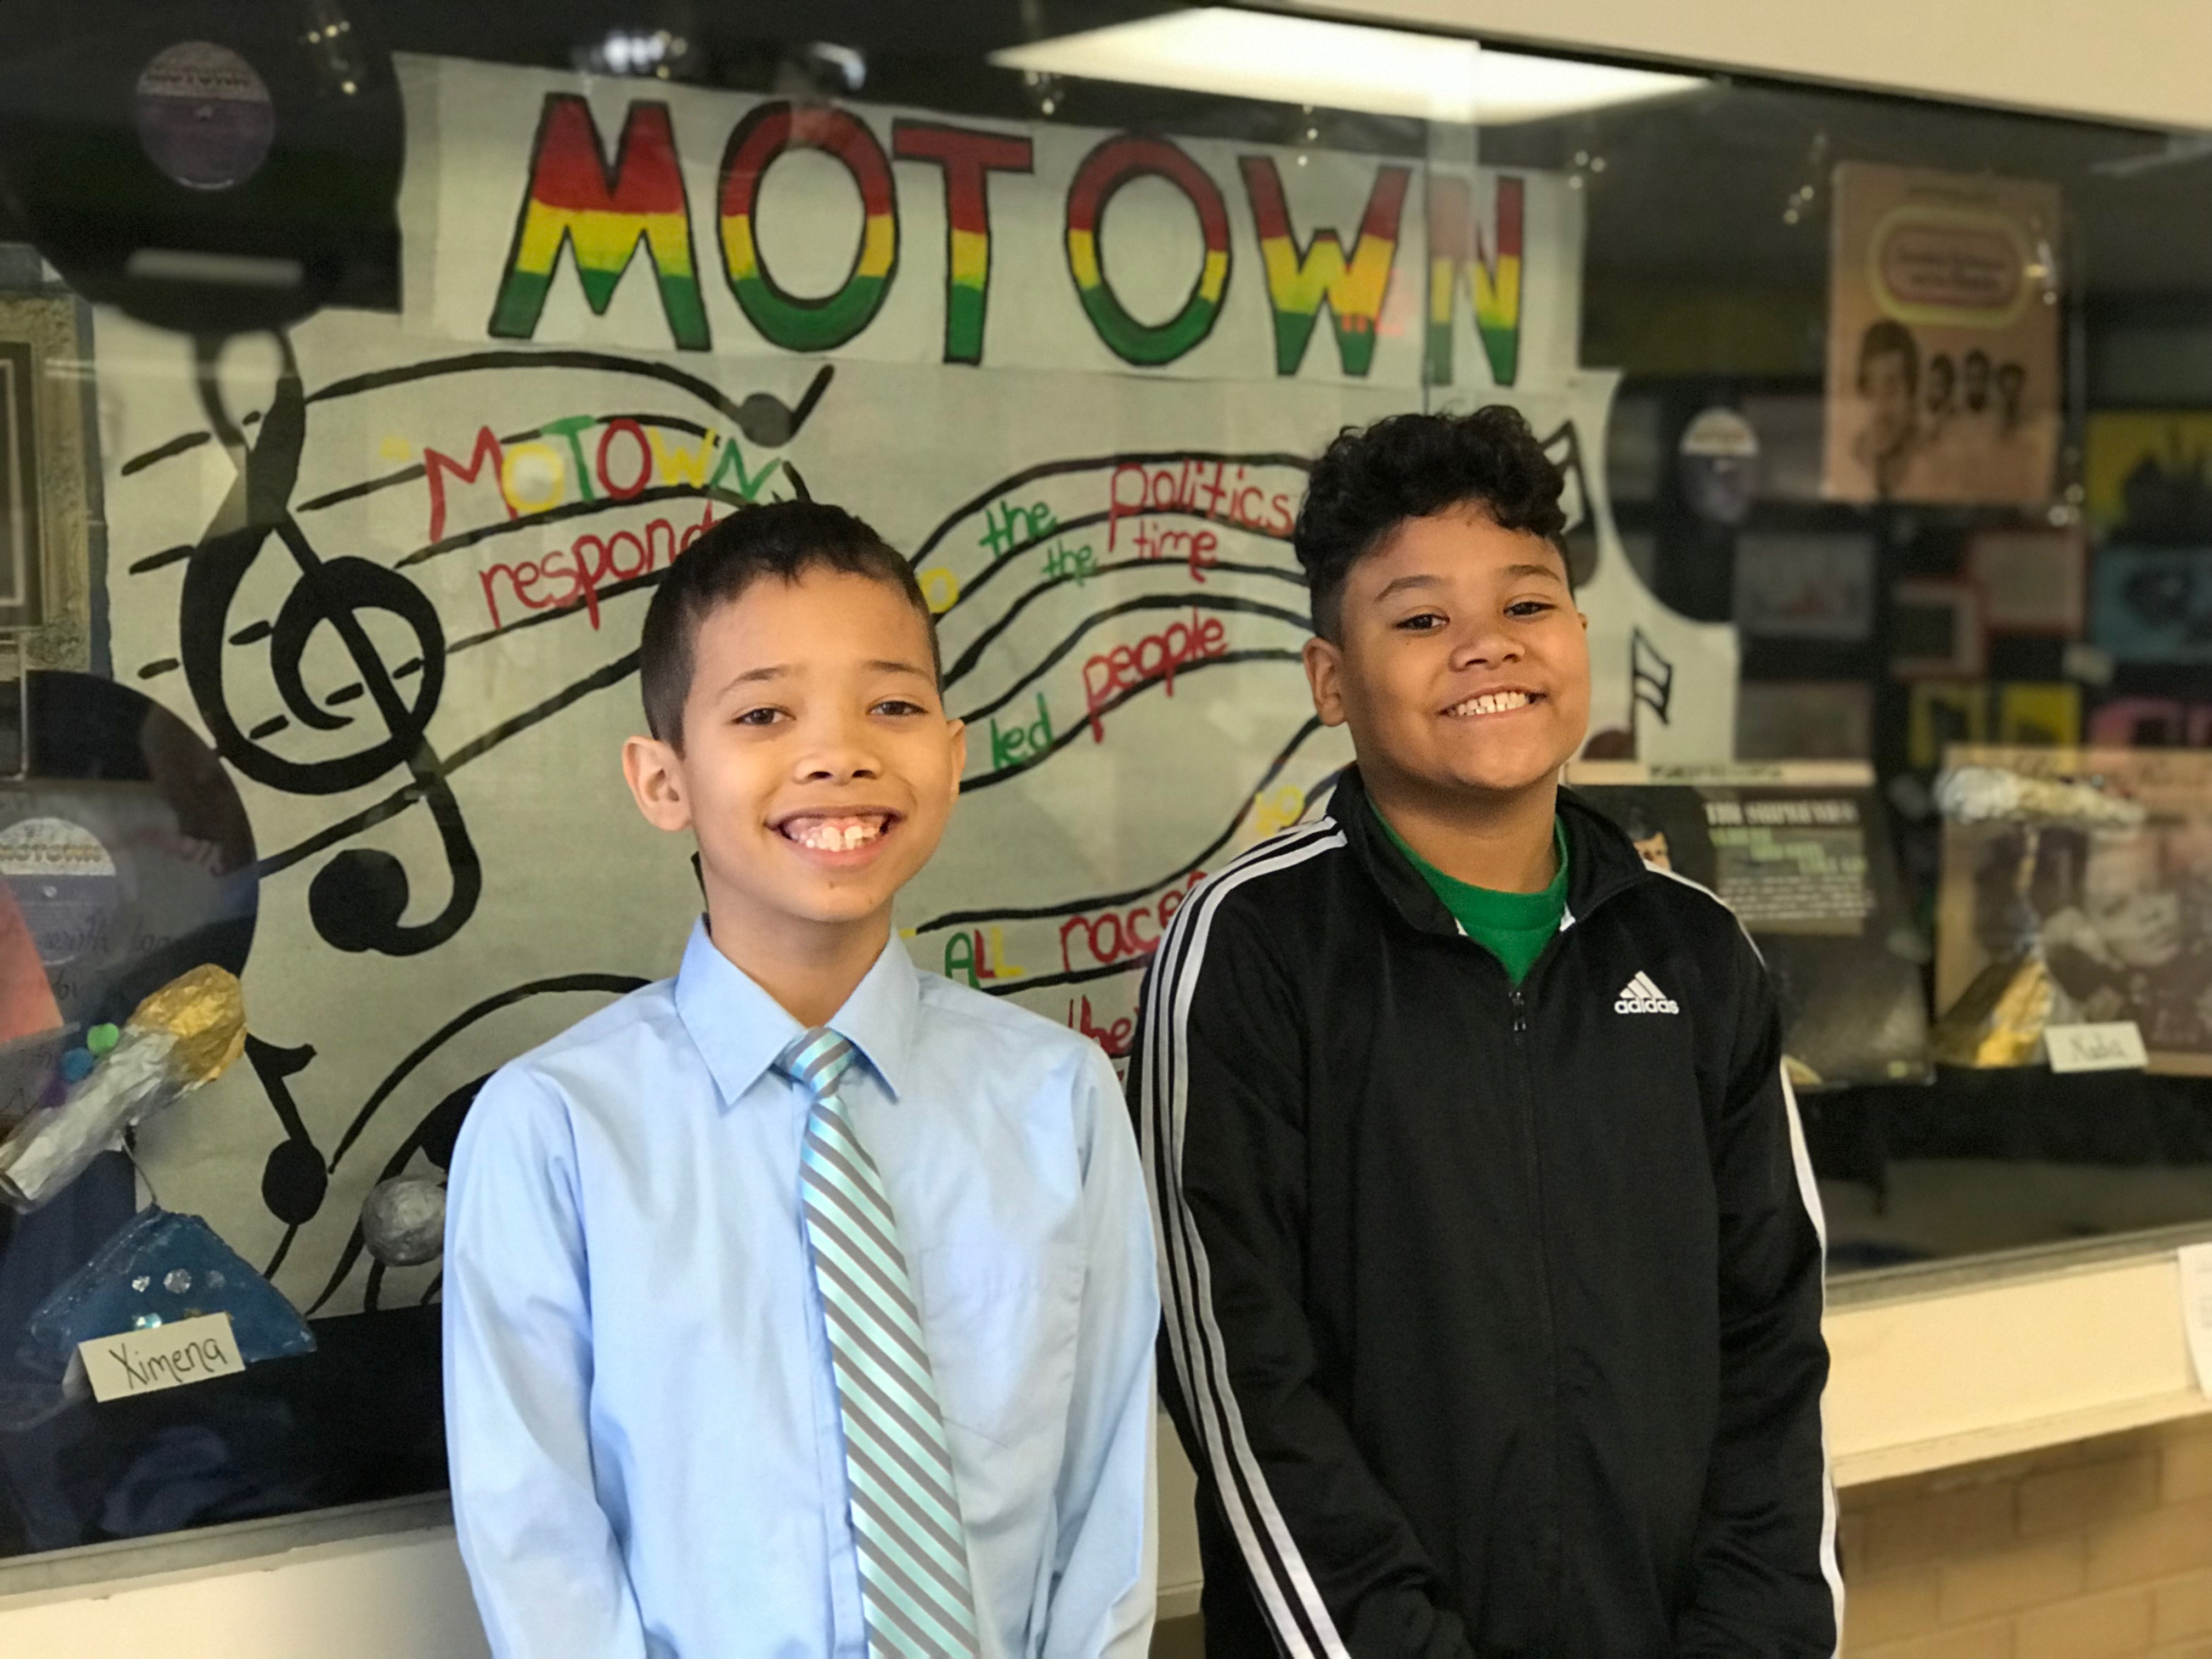 a pair of Mitchell Elementary students stand in front of a sign celebrating Motown music